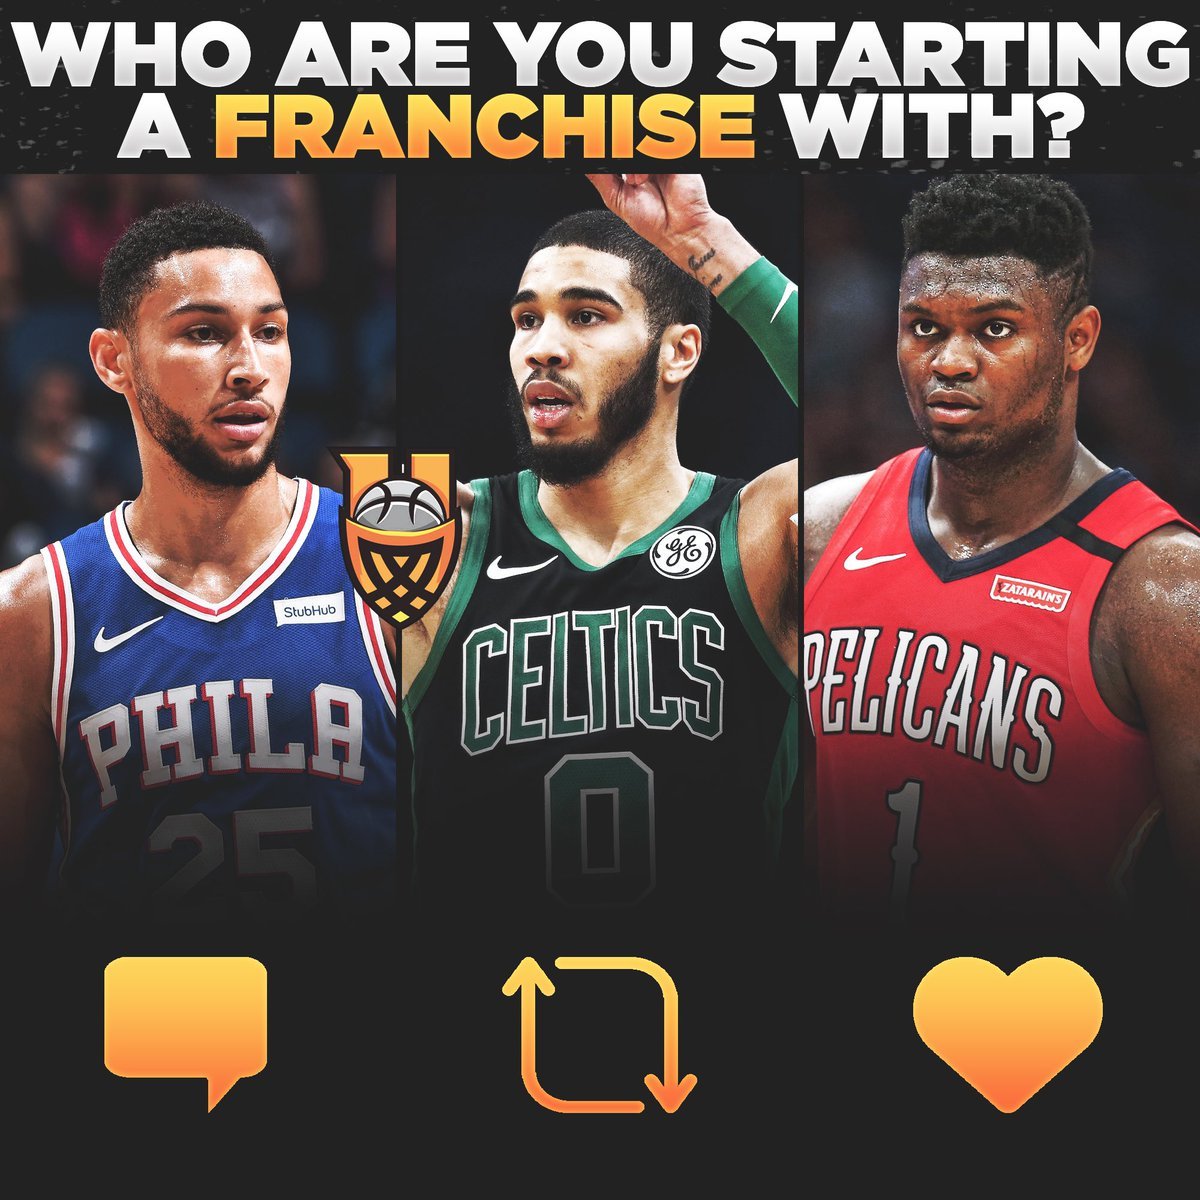 Who are you starting a franchise with? https://t.co/OFz9yUYtAU